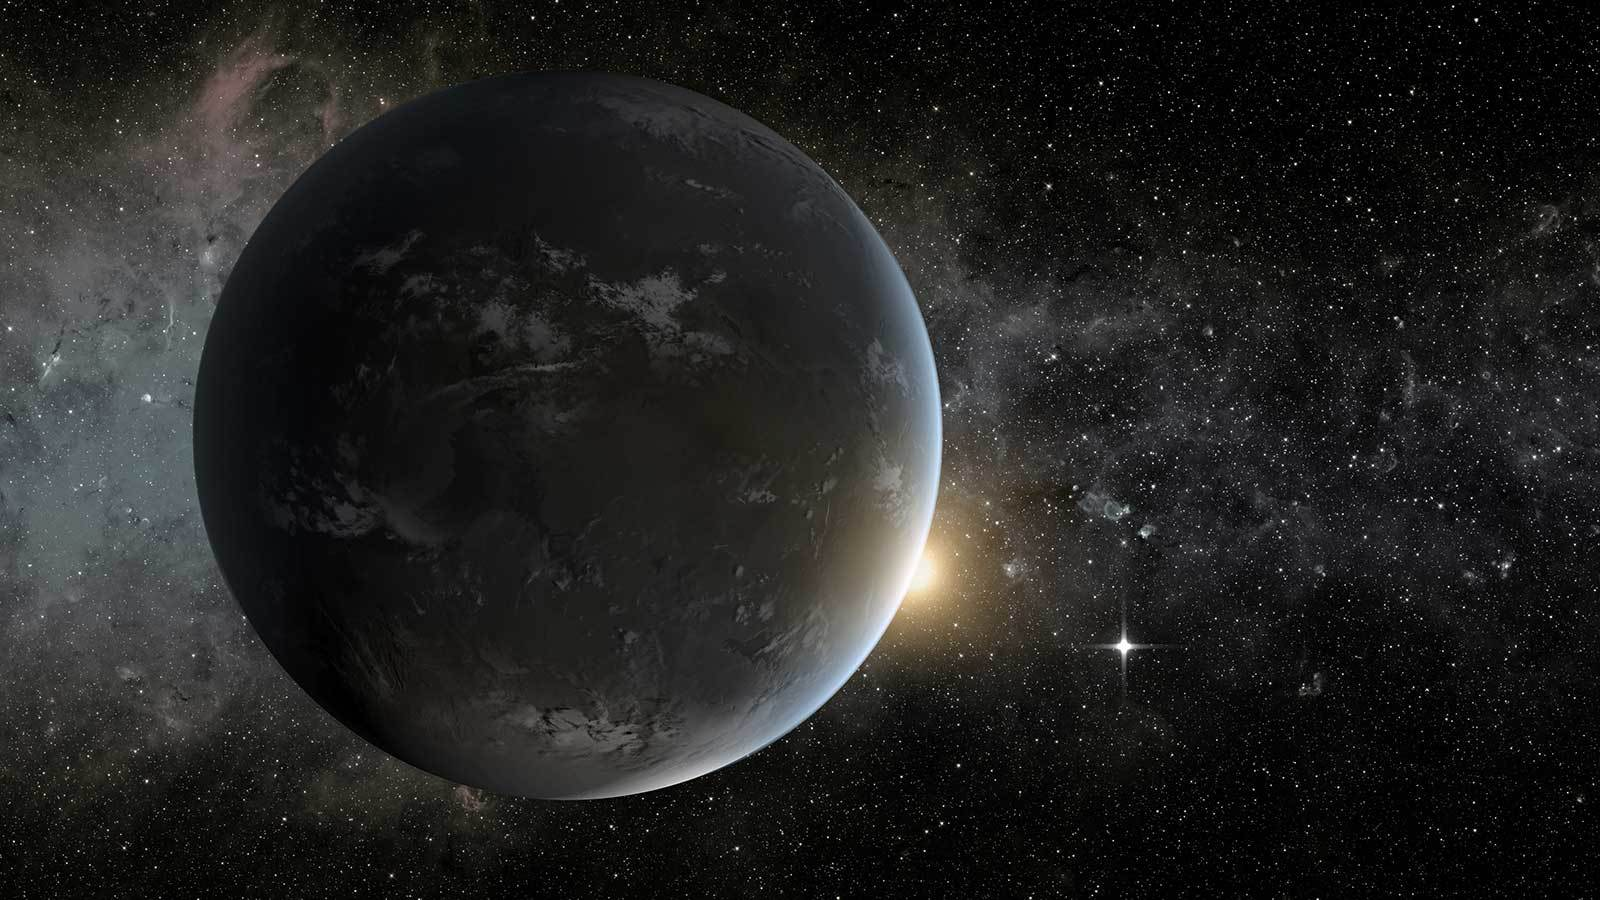 An artist's illustration of an exoplanet in the Goldilocks Zone.